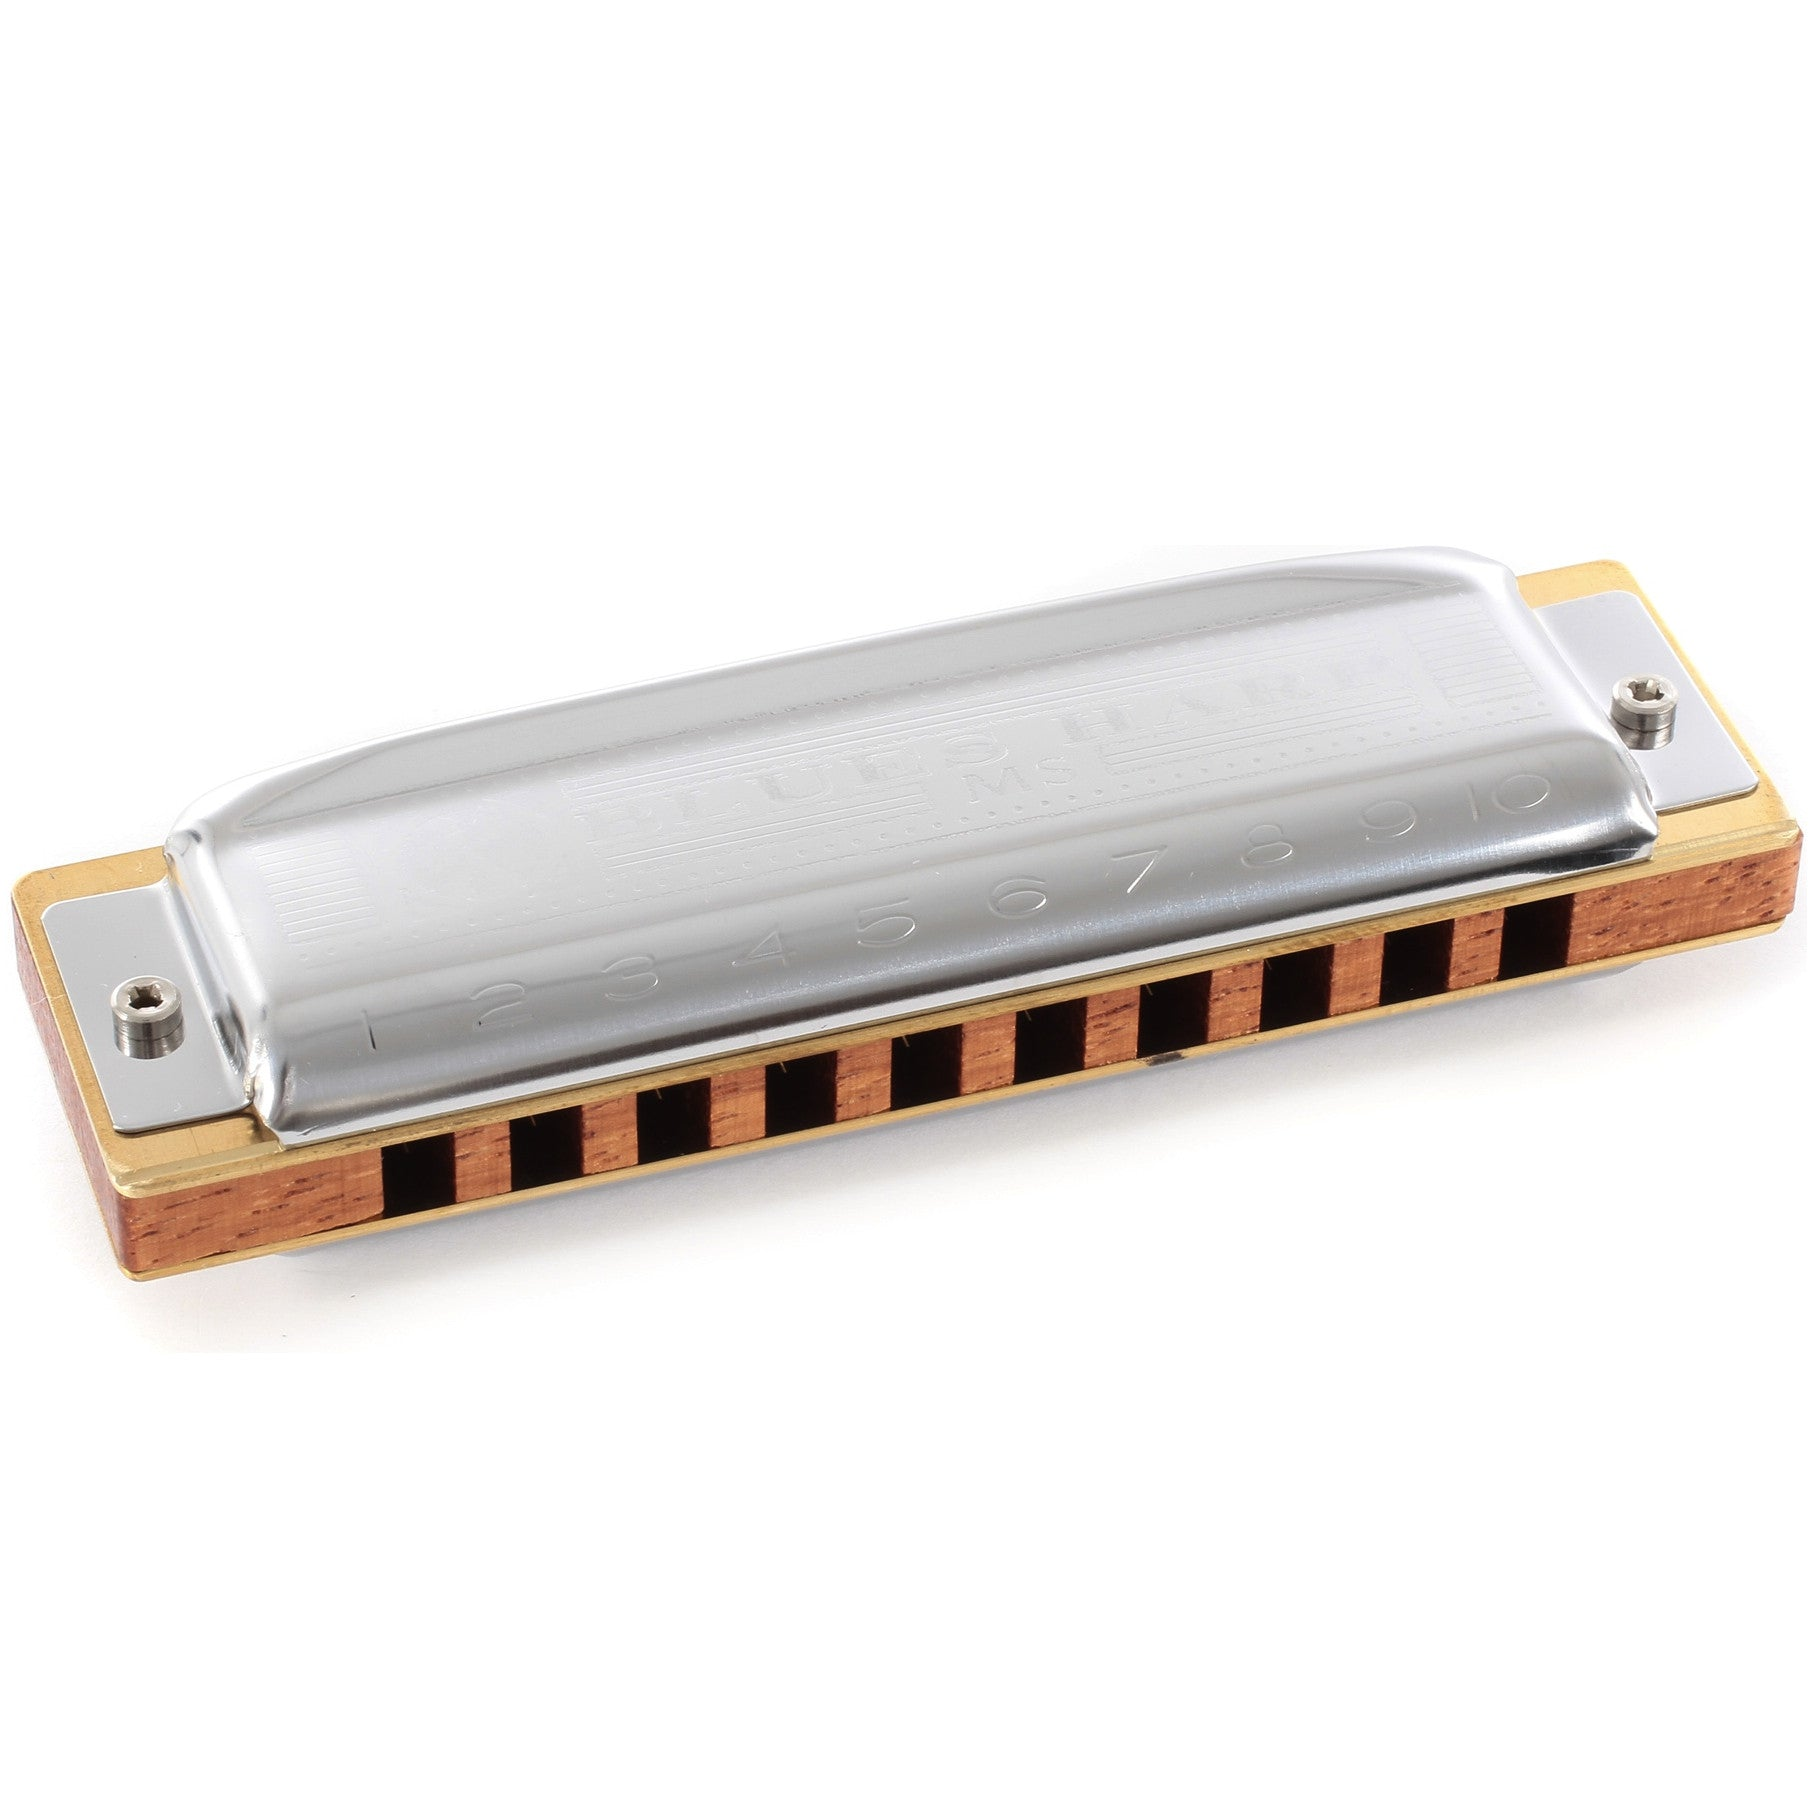 Hohner 532 Blues Harp MS-Series Harmonica in Key of B